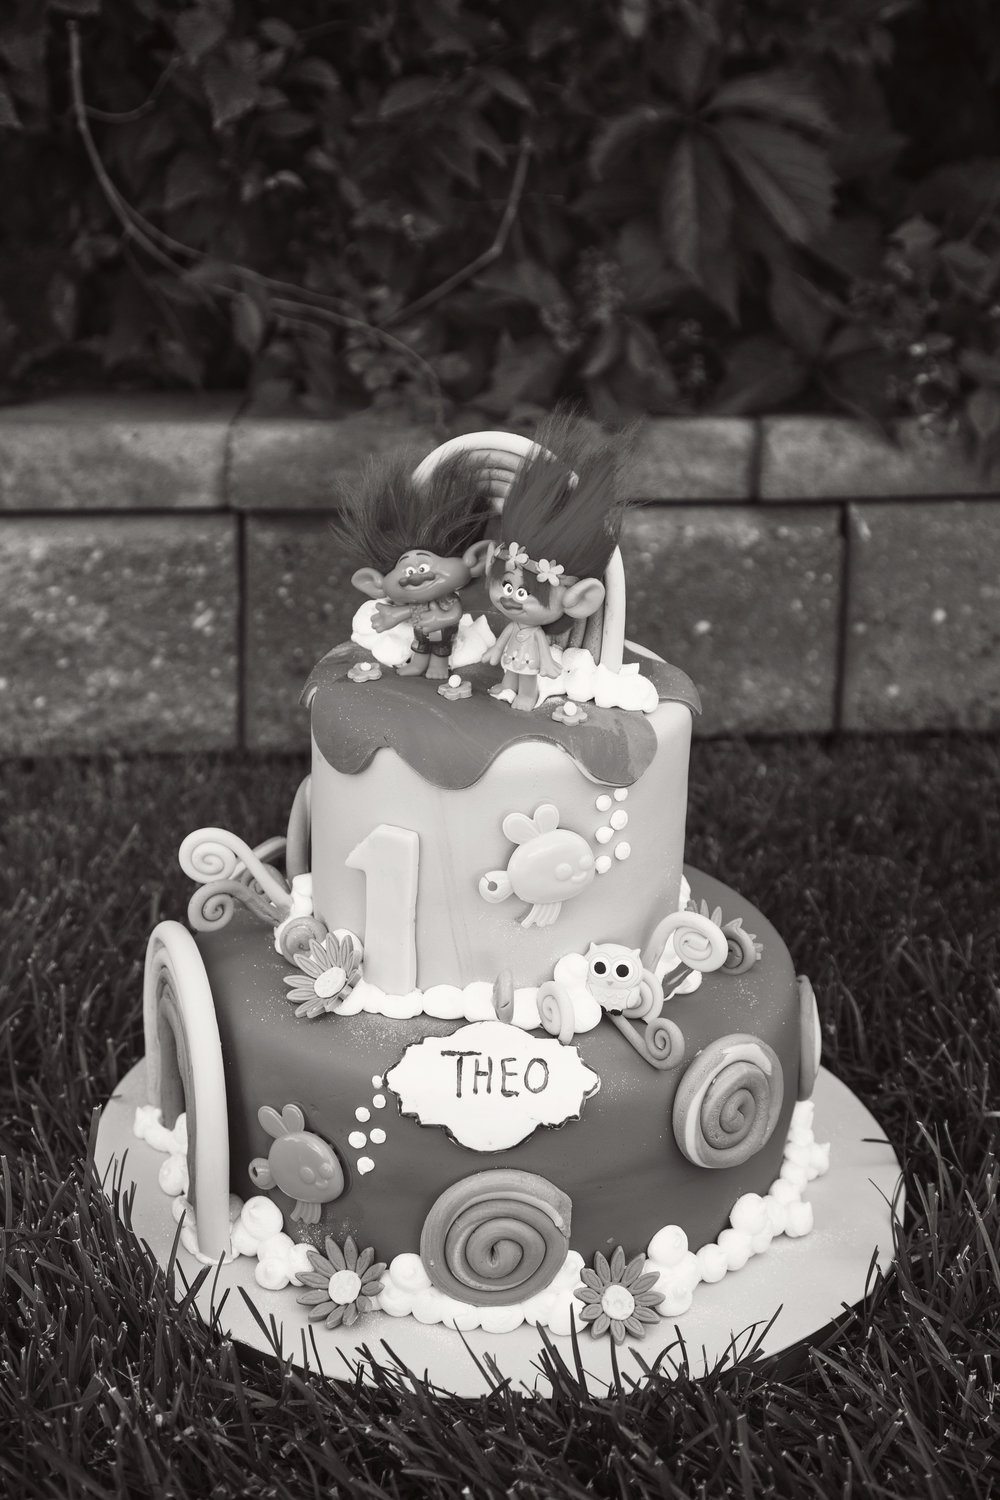 Theo_1stbday_25_bw.jpg